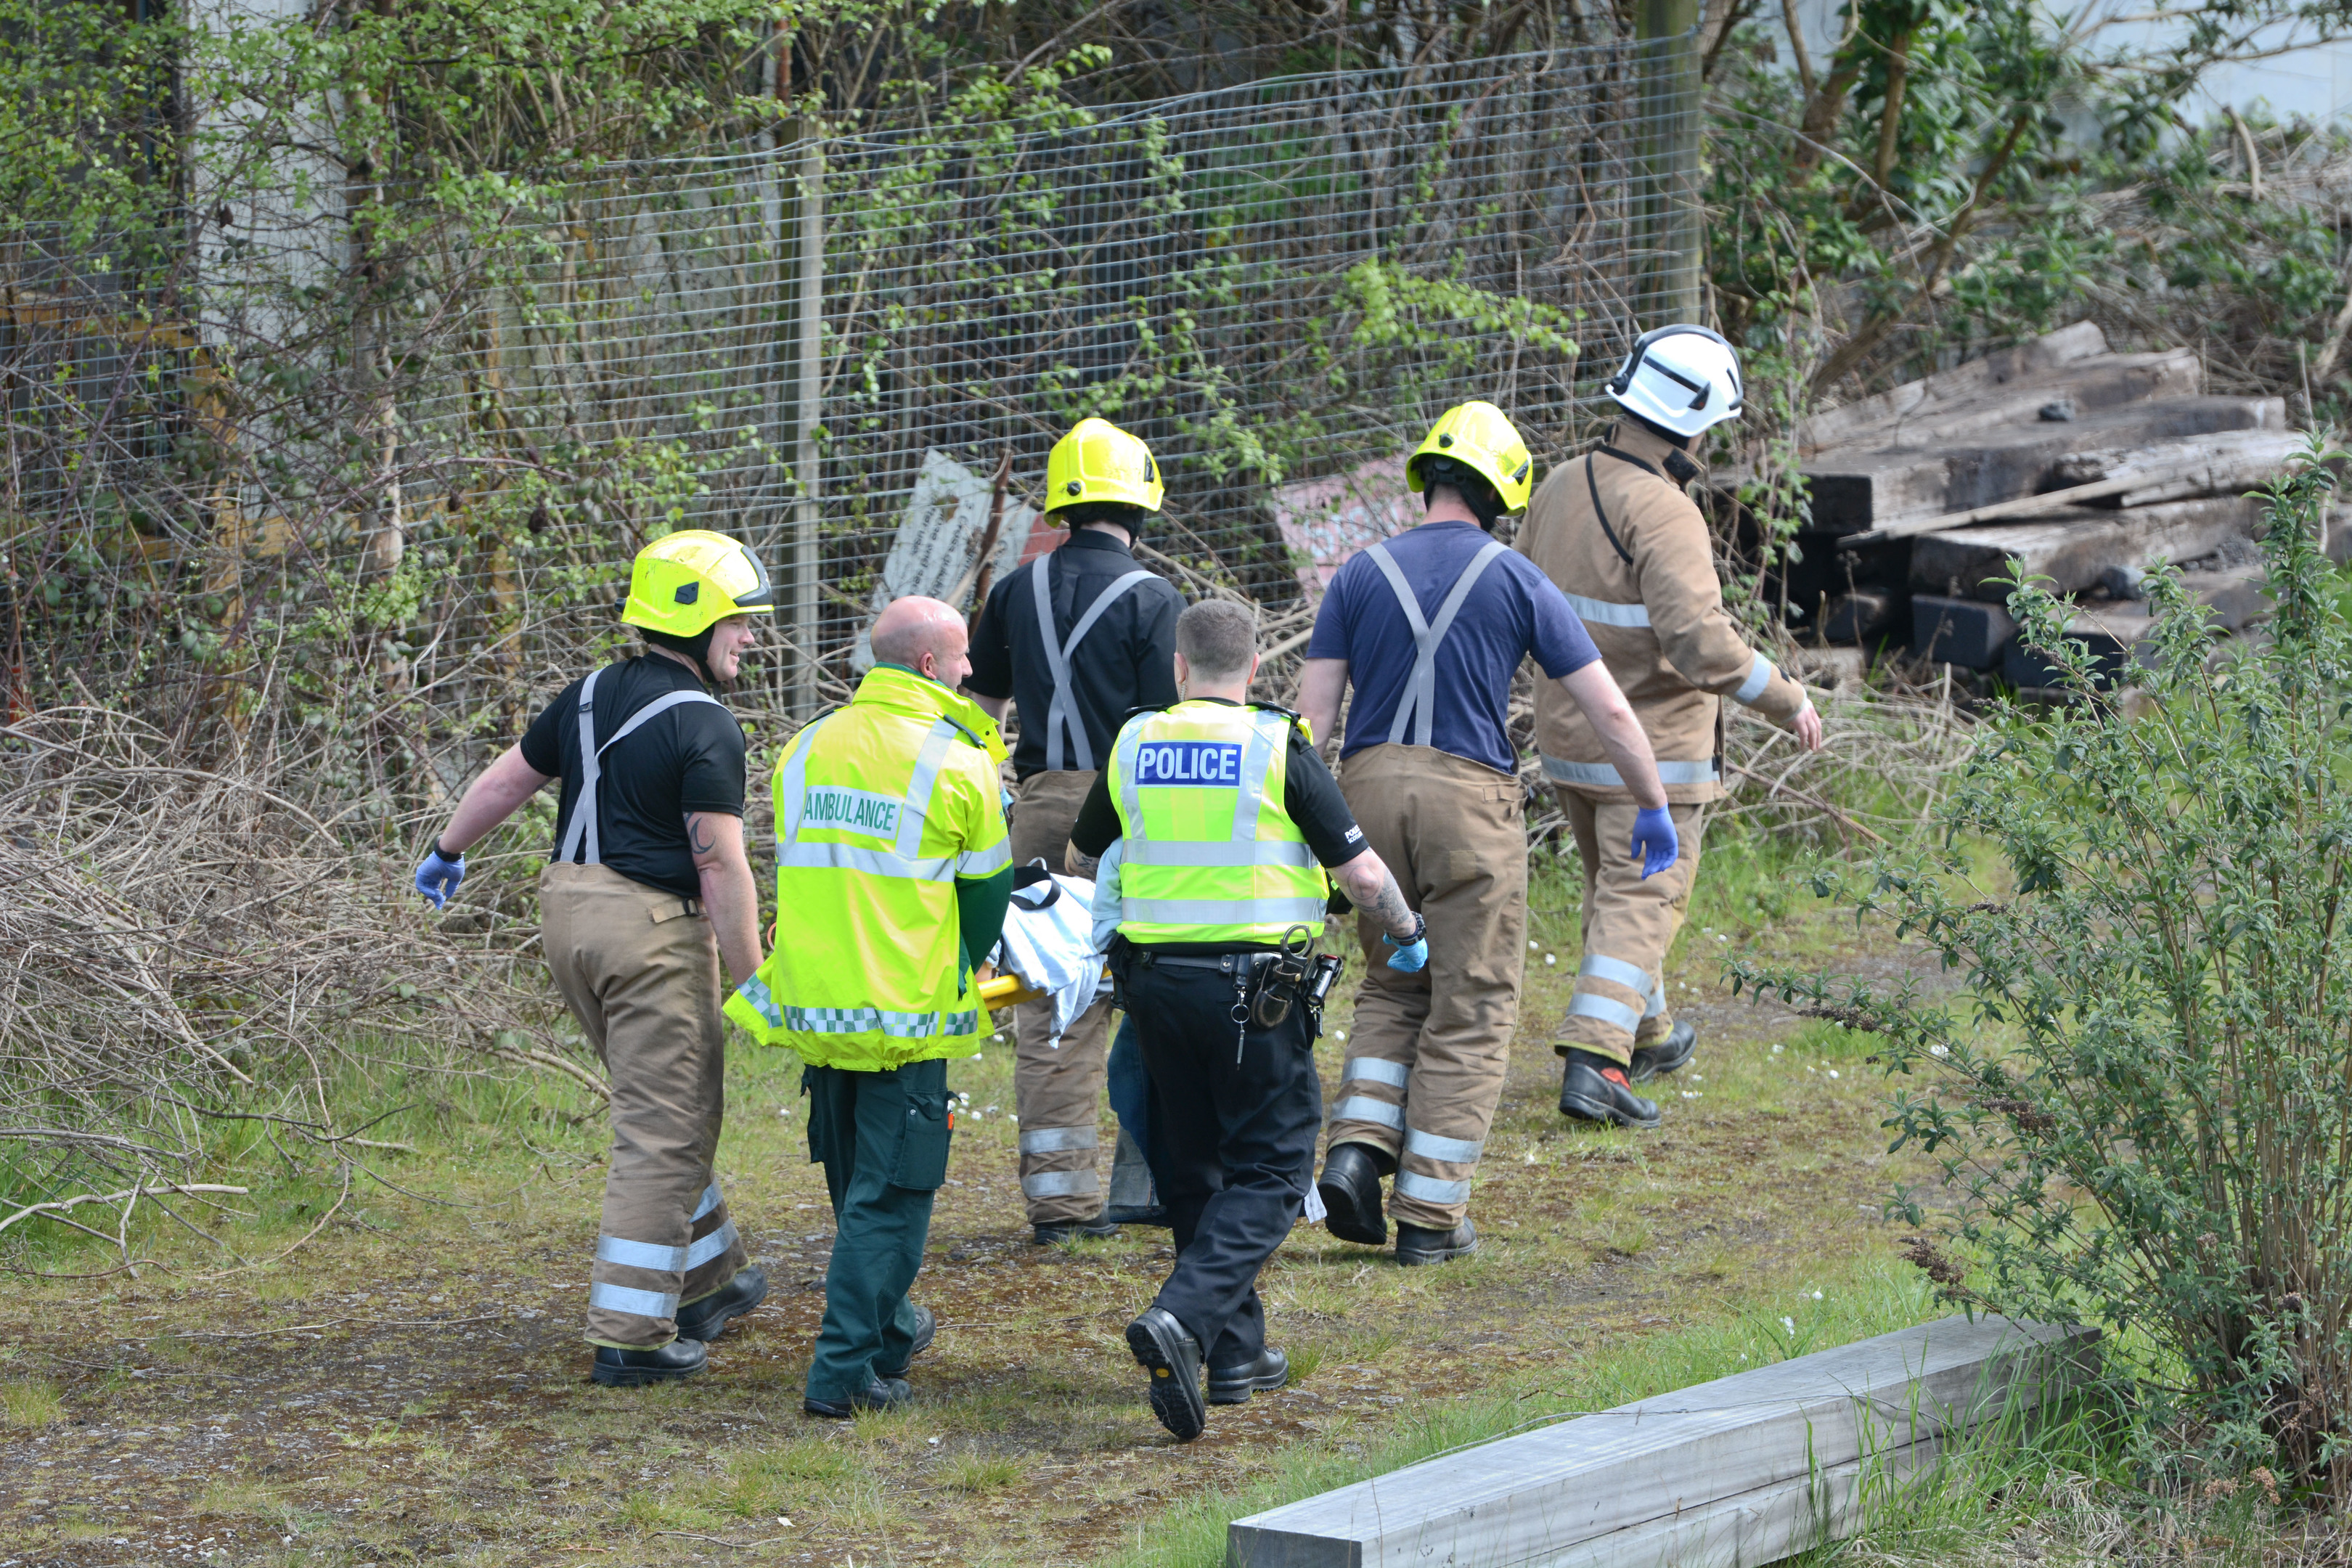 The injured man is led away after accident at Perth railway line.